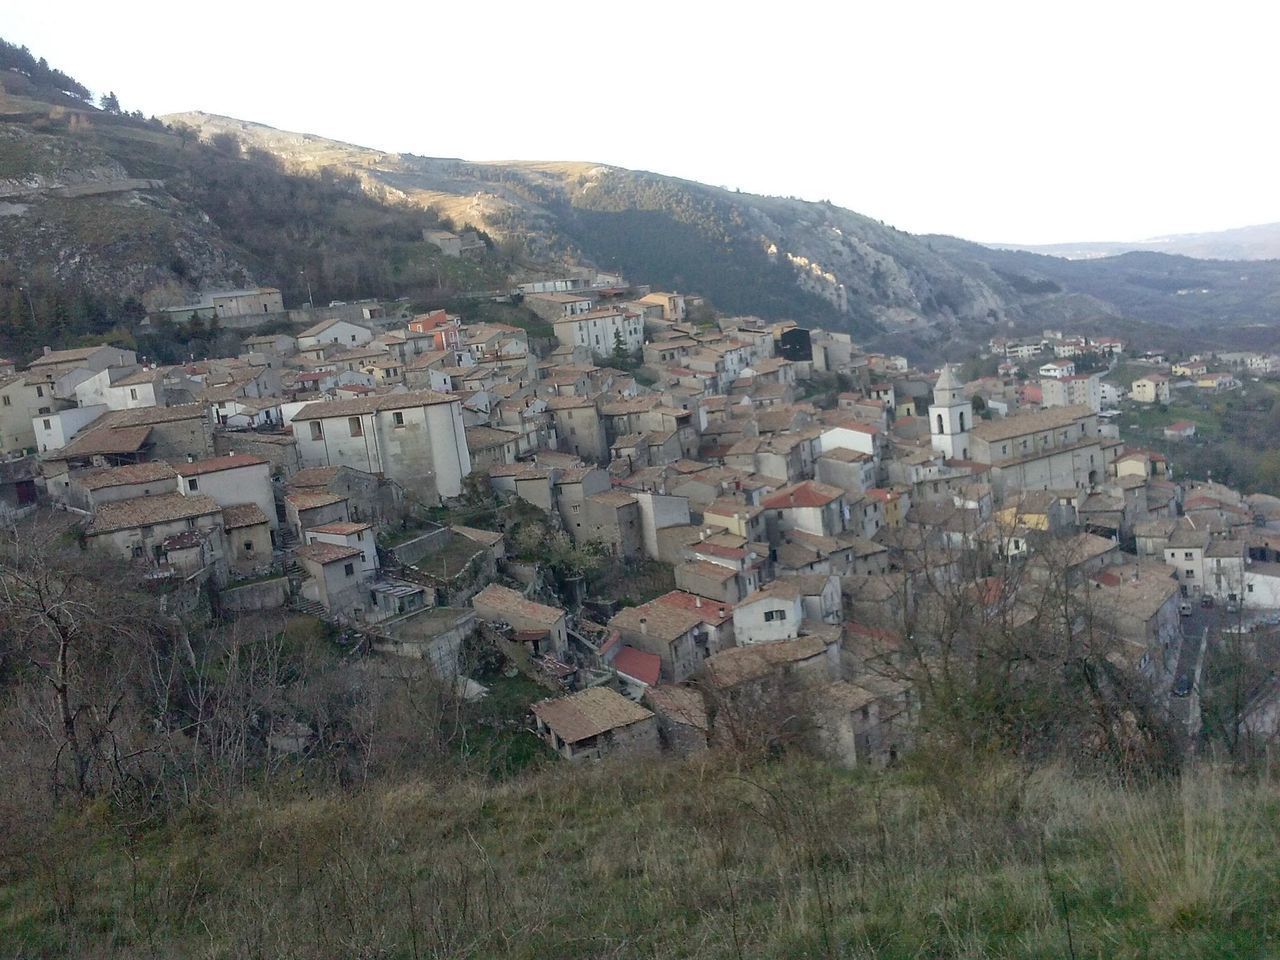 Alto Molise Architecture Building Exterior Built Structure City Cityscape Clear Sky Community Crowded EyeEm Best Shots High Angle View Hill House Landscape Molise Mountain Mountain Range Residential Building Residential District Residential Structure Town TOWNSCAPE Tree